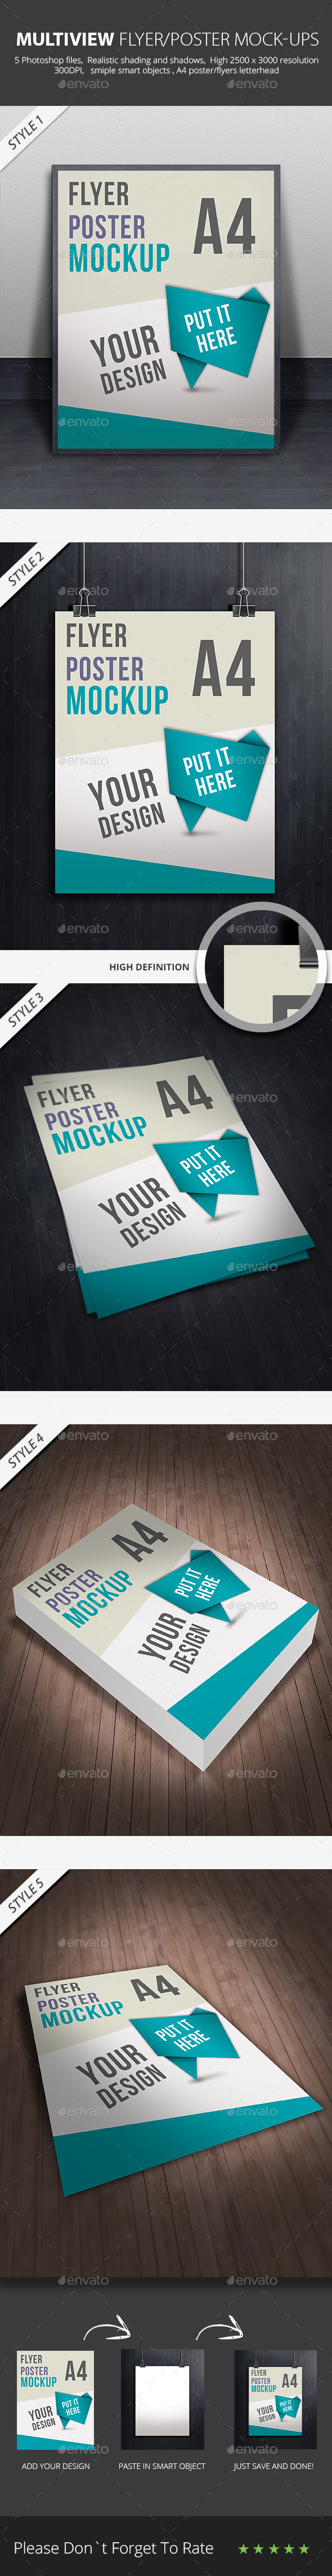 GraphicRiver Multiview Flyer Poster Mock-ups 9000718